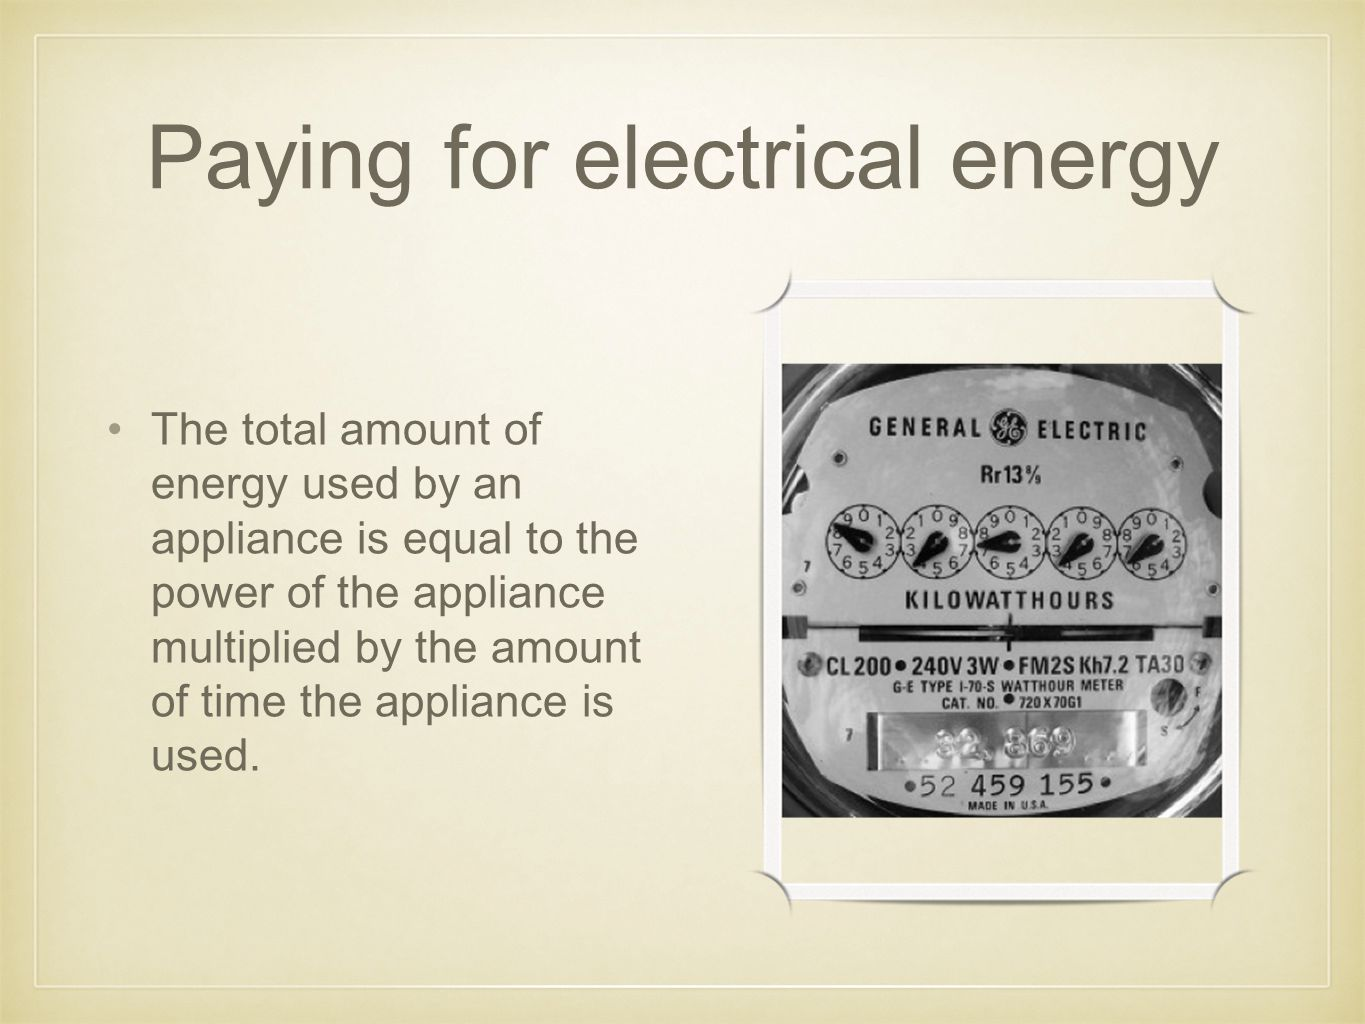 Paying for electrical energy The total amount of energy used by an appliance is equal to the power of the appliance multiplied by the amount of time the appliance is used.